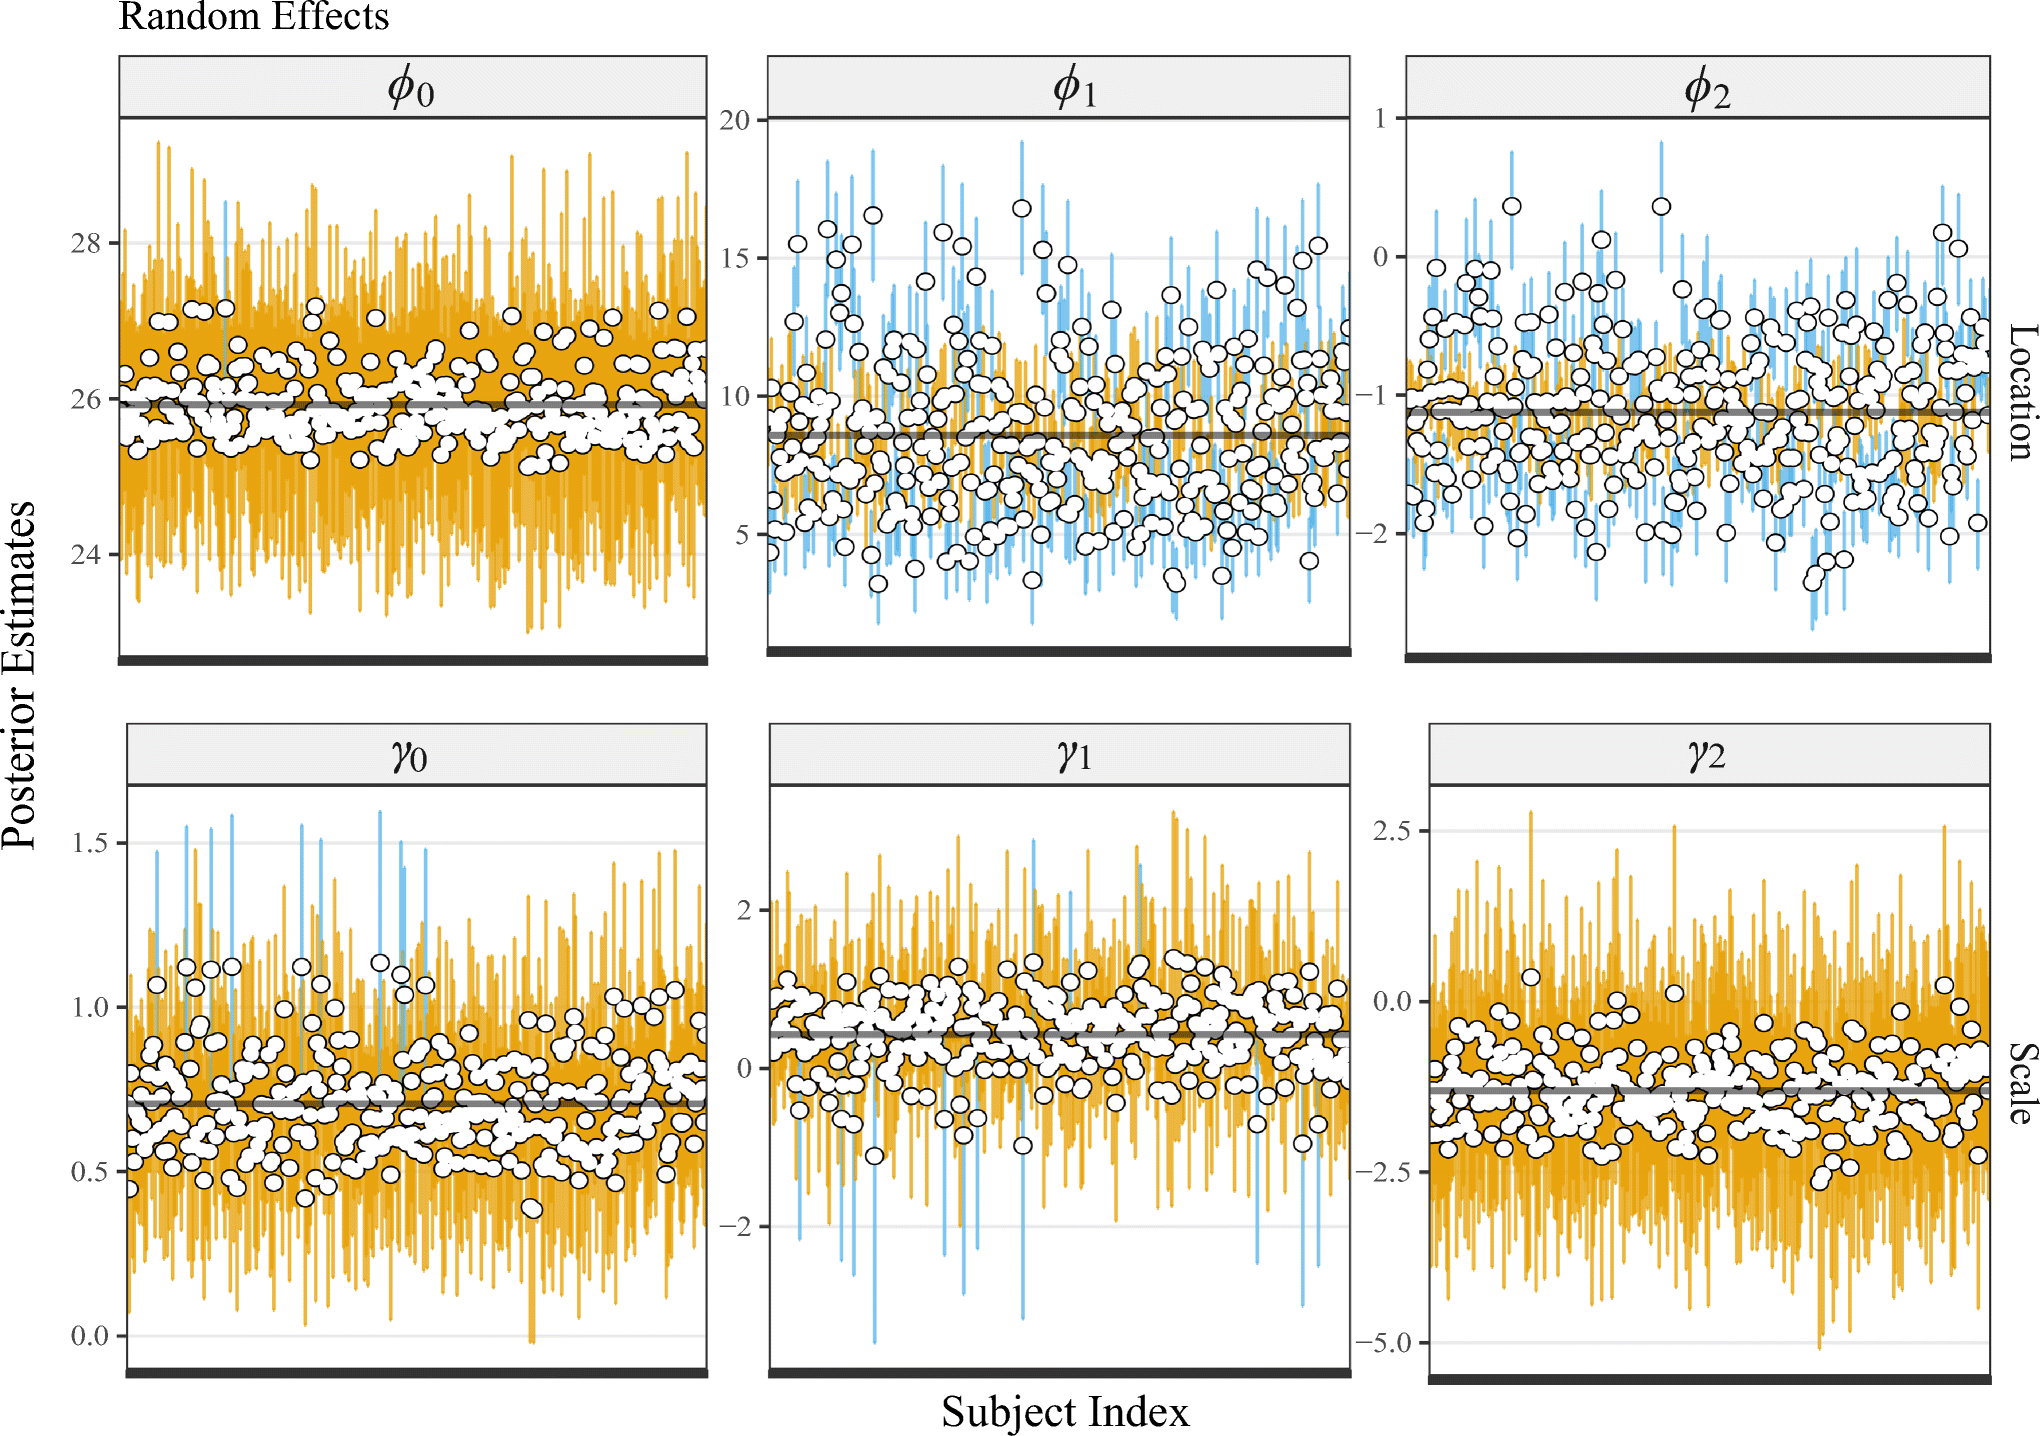 A Bayesian nonlinear mixed-effects location scale model for